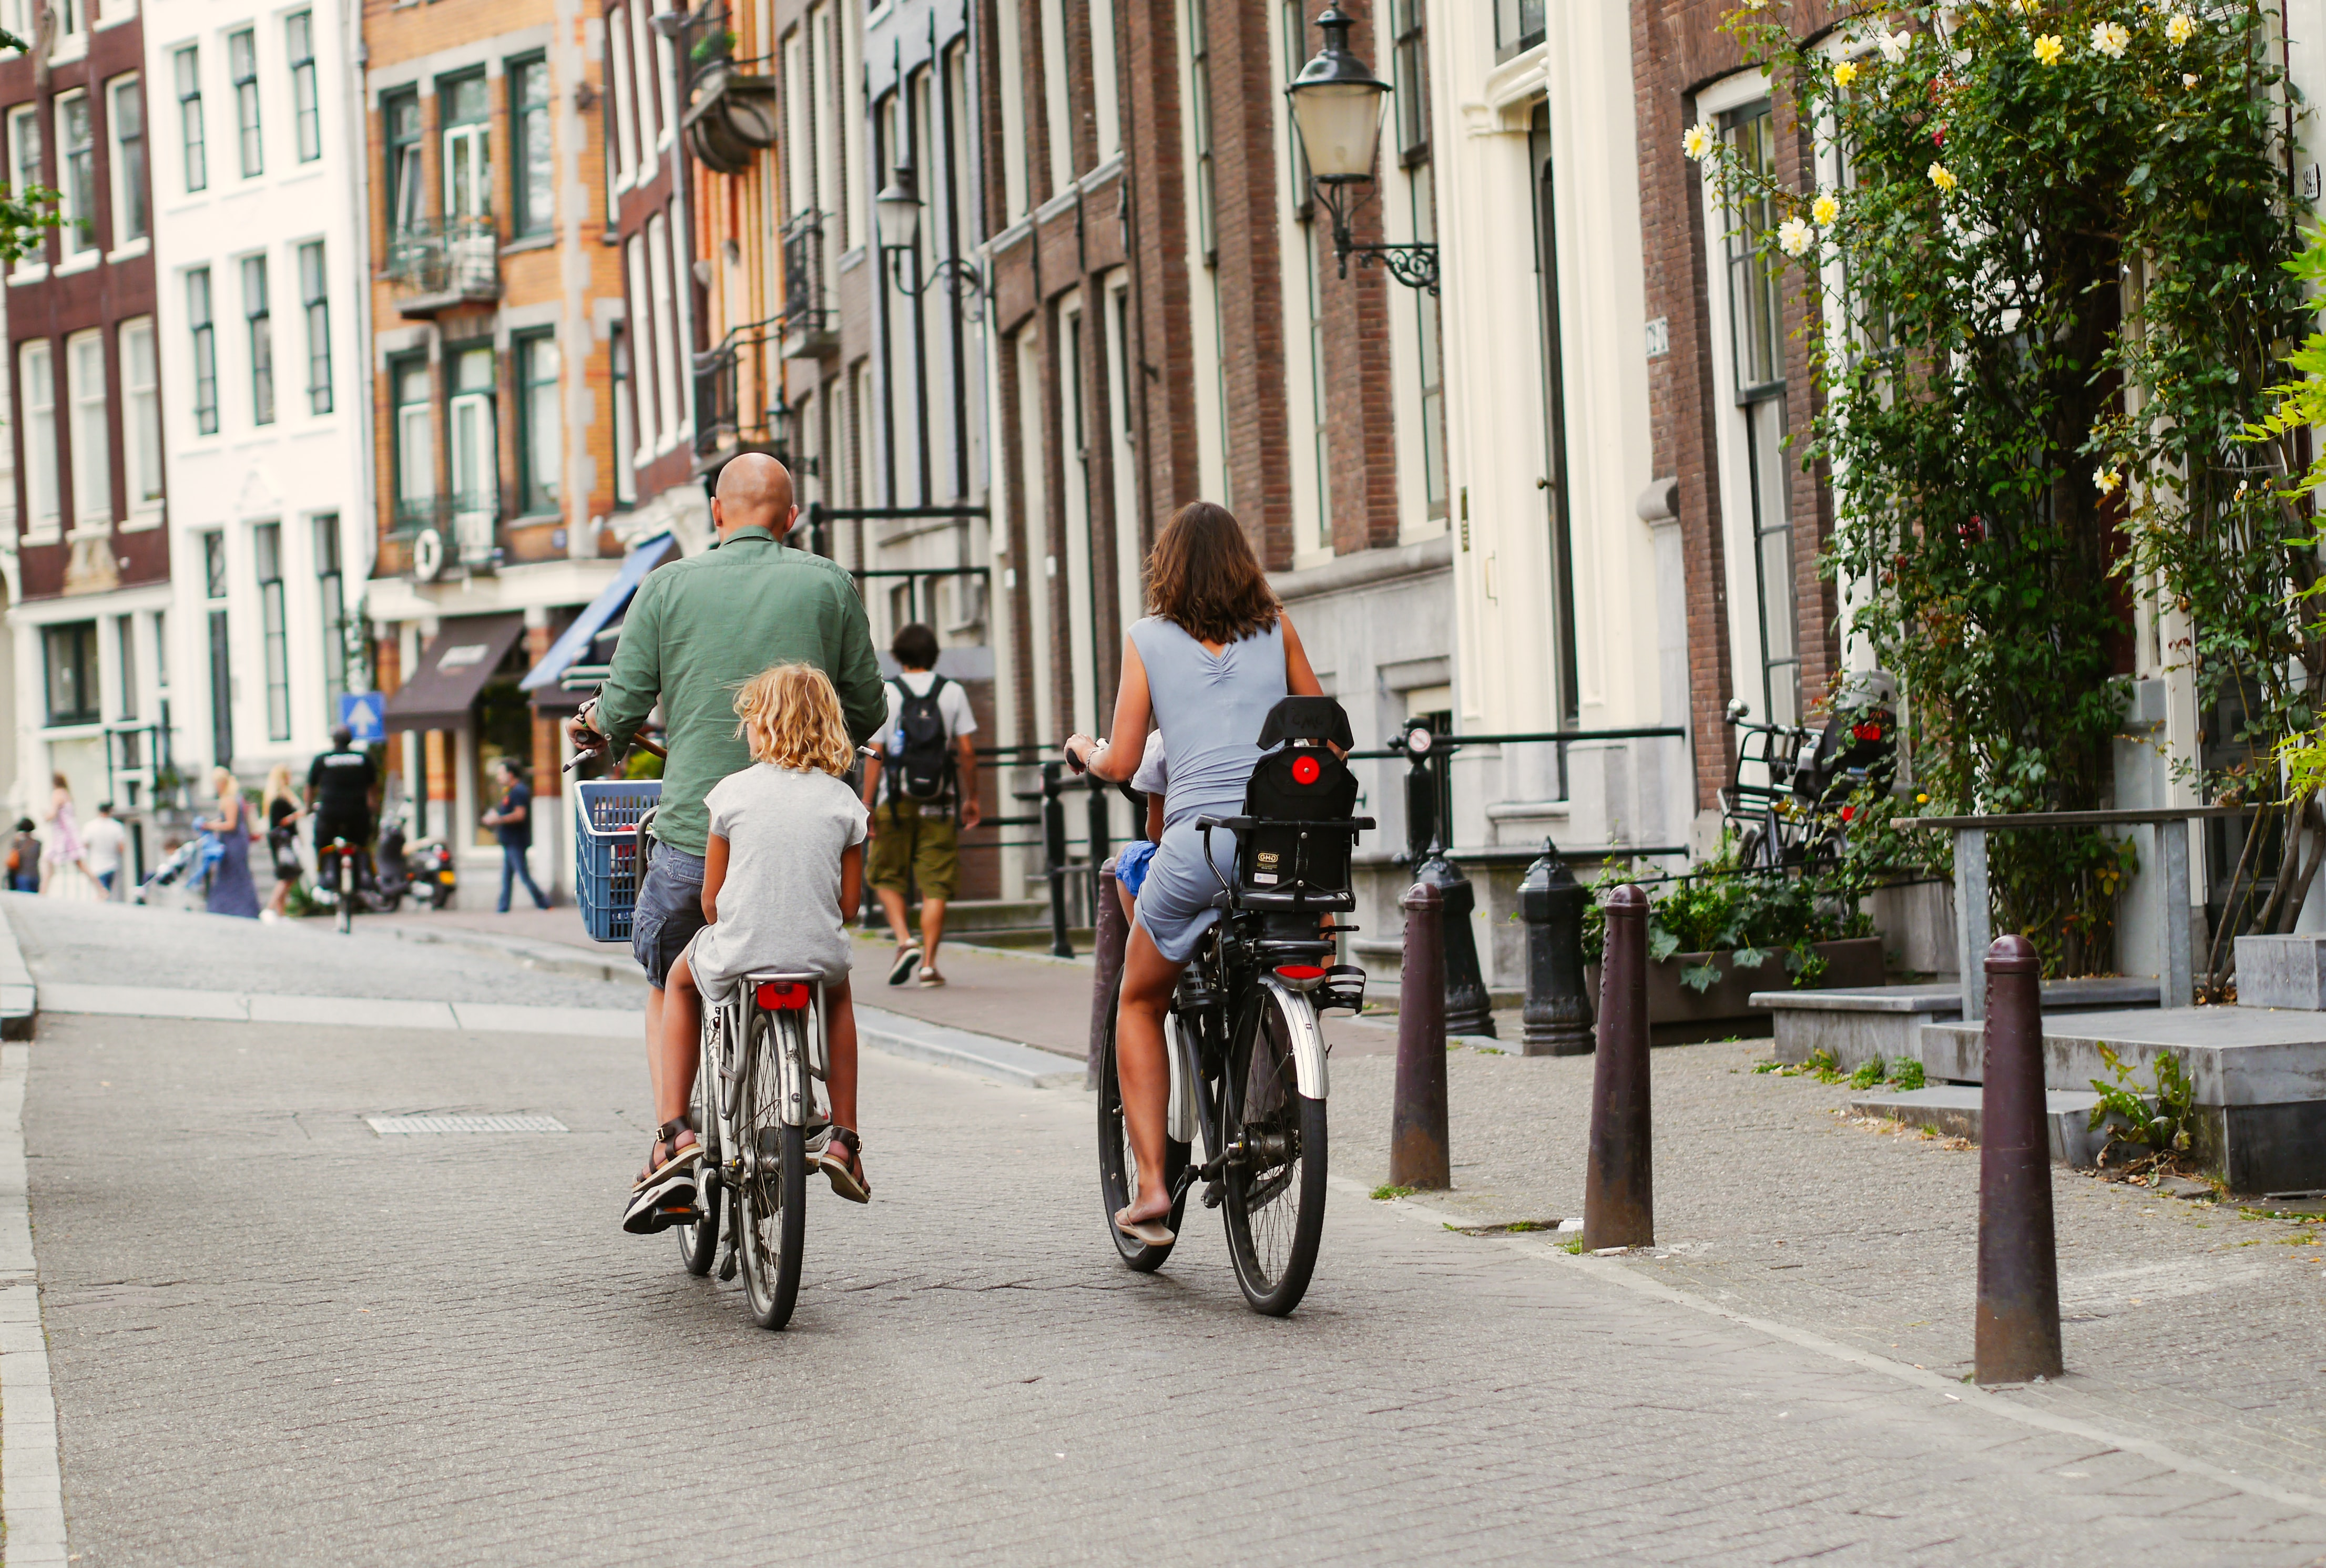 Picture of people riding their bikes down the street. The bikers are riding away from the camera and have children in bikeseats.